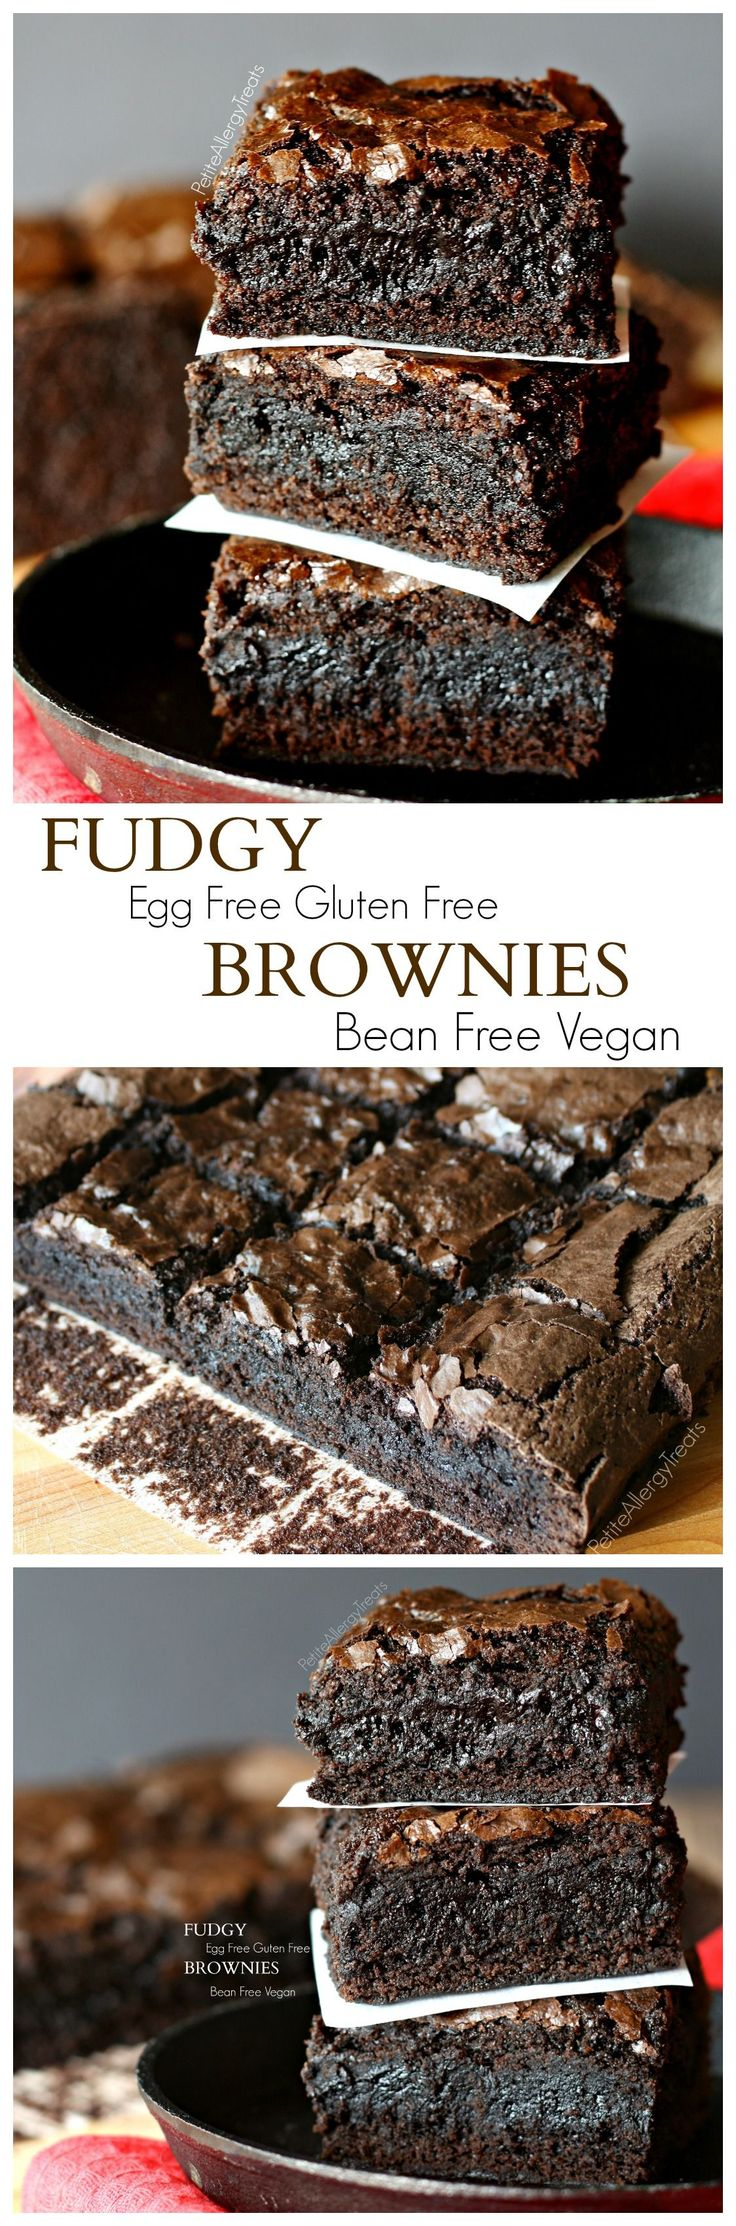 Gluten Free Egg Free Brownies Fudgy (Vegan Bean Free)- Decadent eggless brownie that is super fudgy! PetiteAllergyTreats